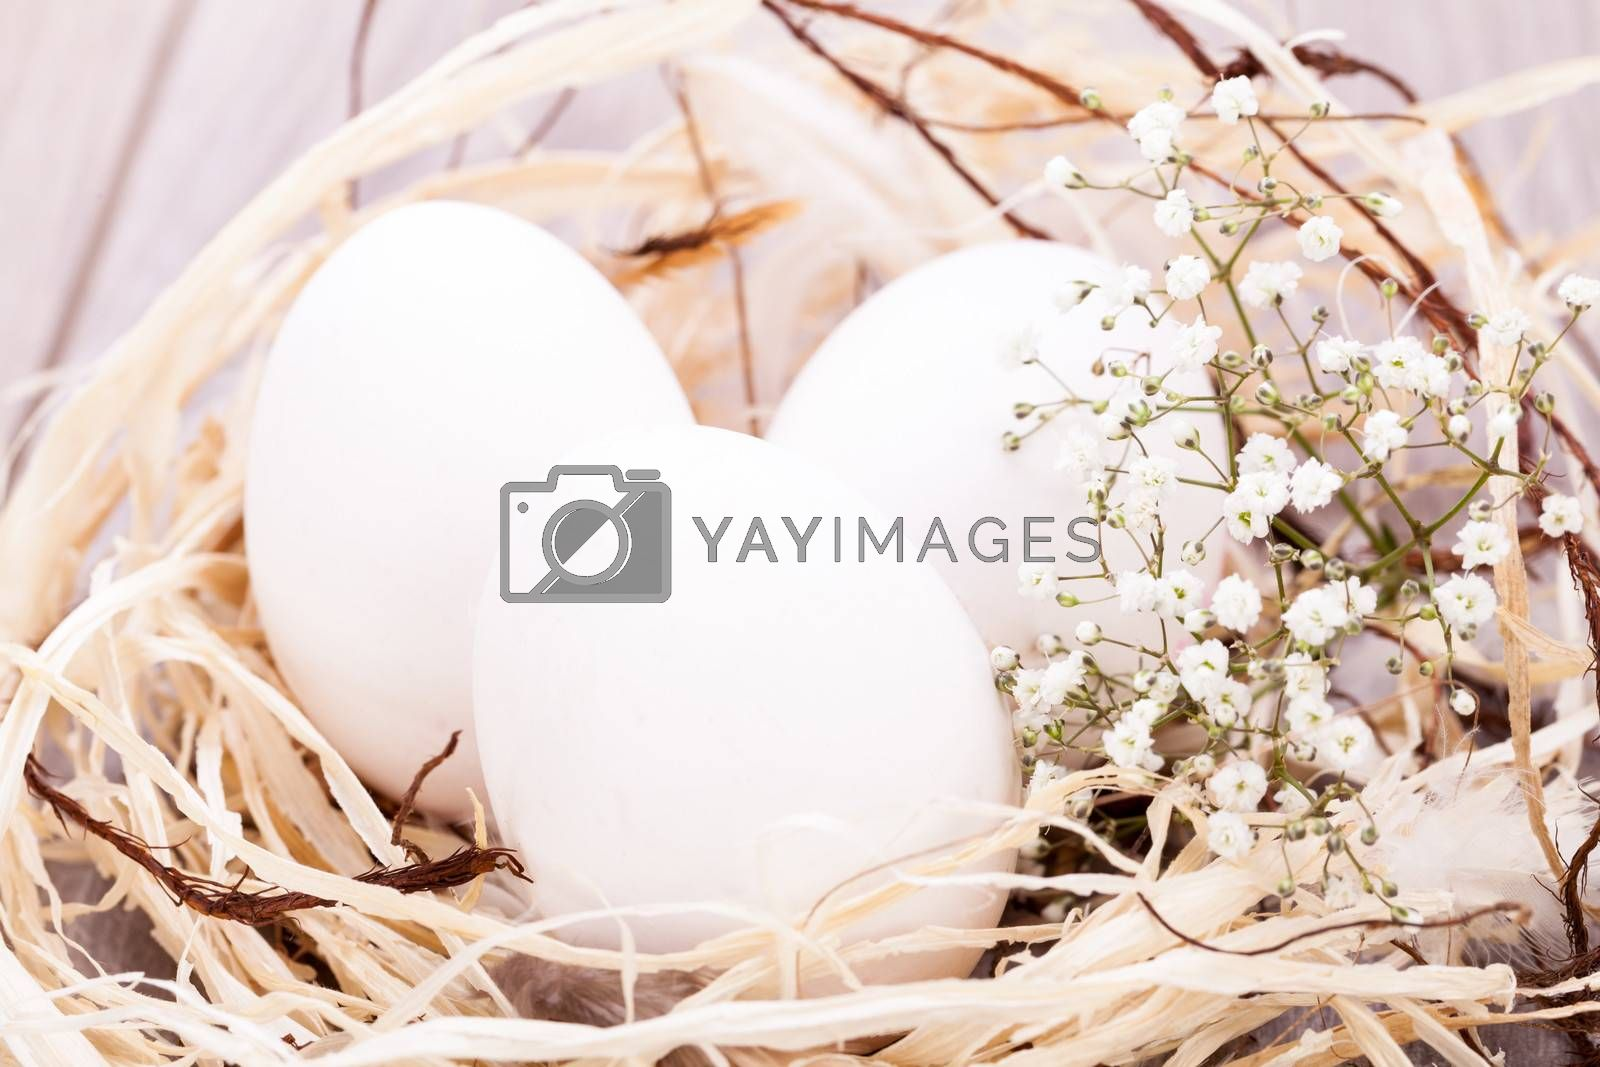 Three plain white undecorated Easter eggs nestling in a straw nest with a delicate dainty spray of Babys Breath flowers to celebrate springtime and the Easter holiday